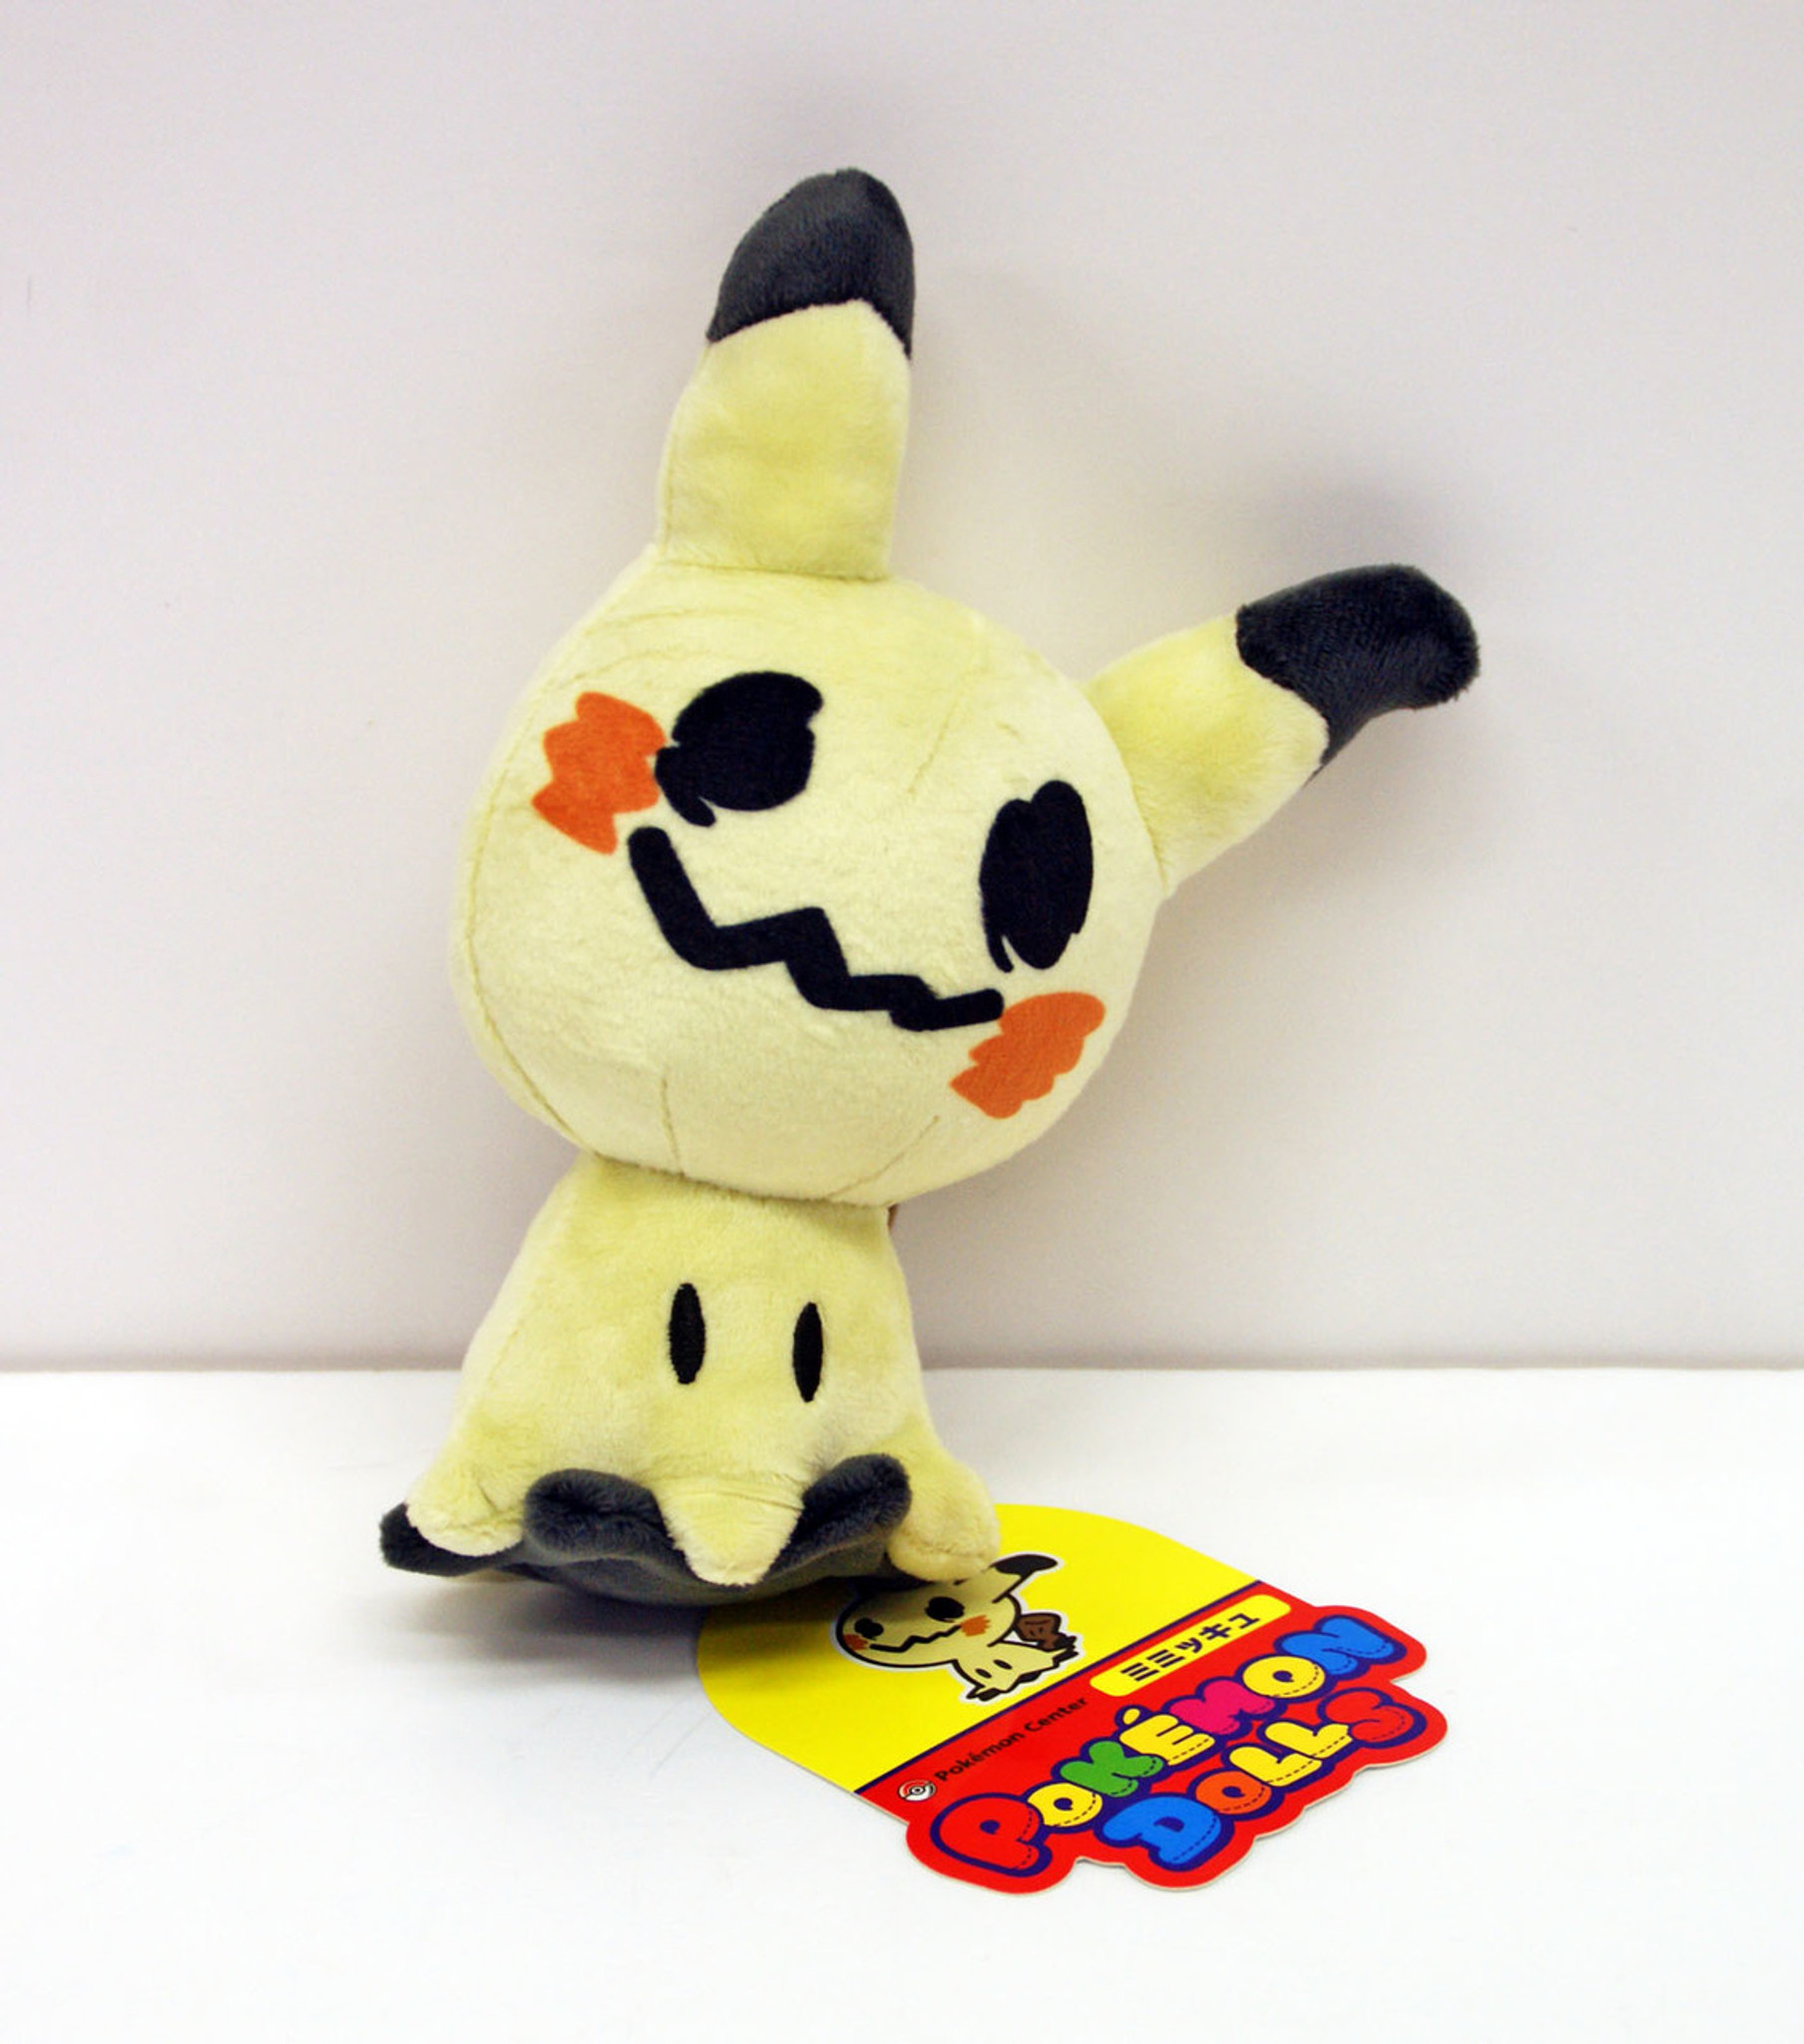 A Mimikyu plush leans against the wall.